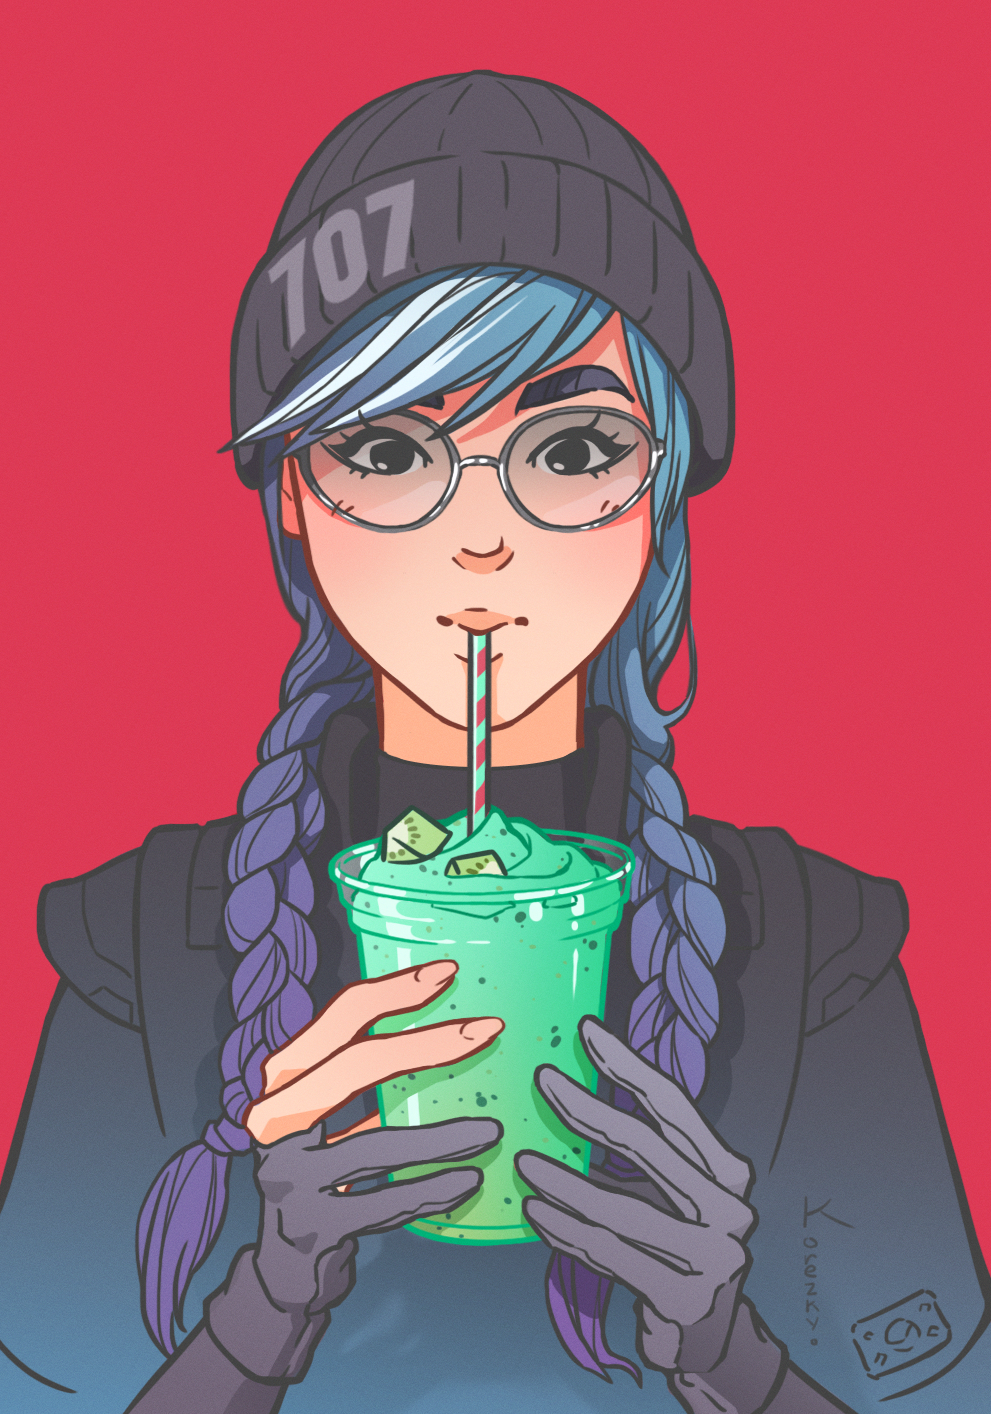 Dokkaebi fan art by Korezky vdeogamedesignerjobs